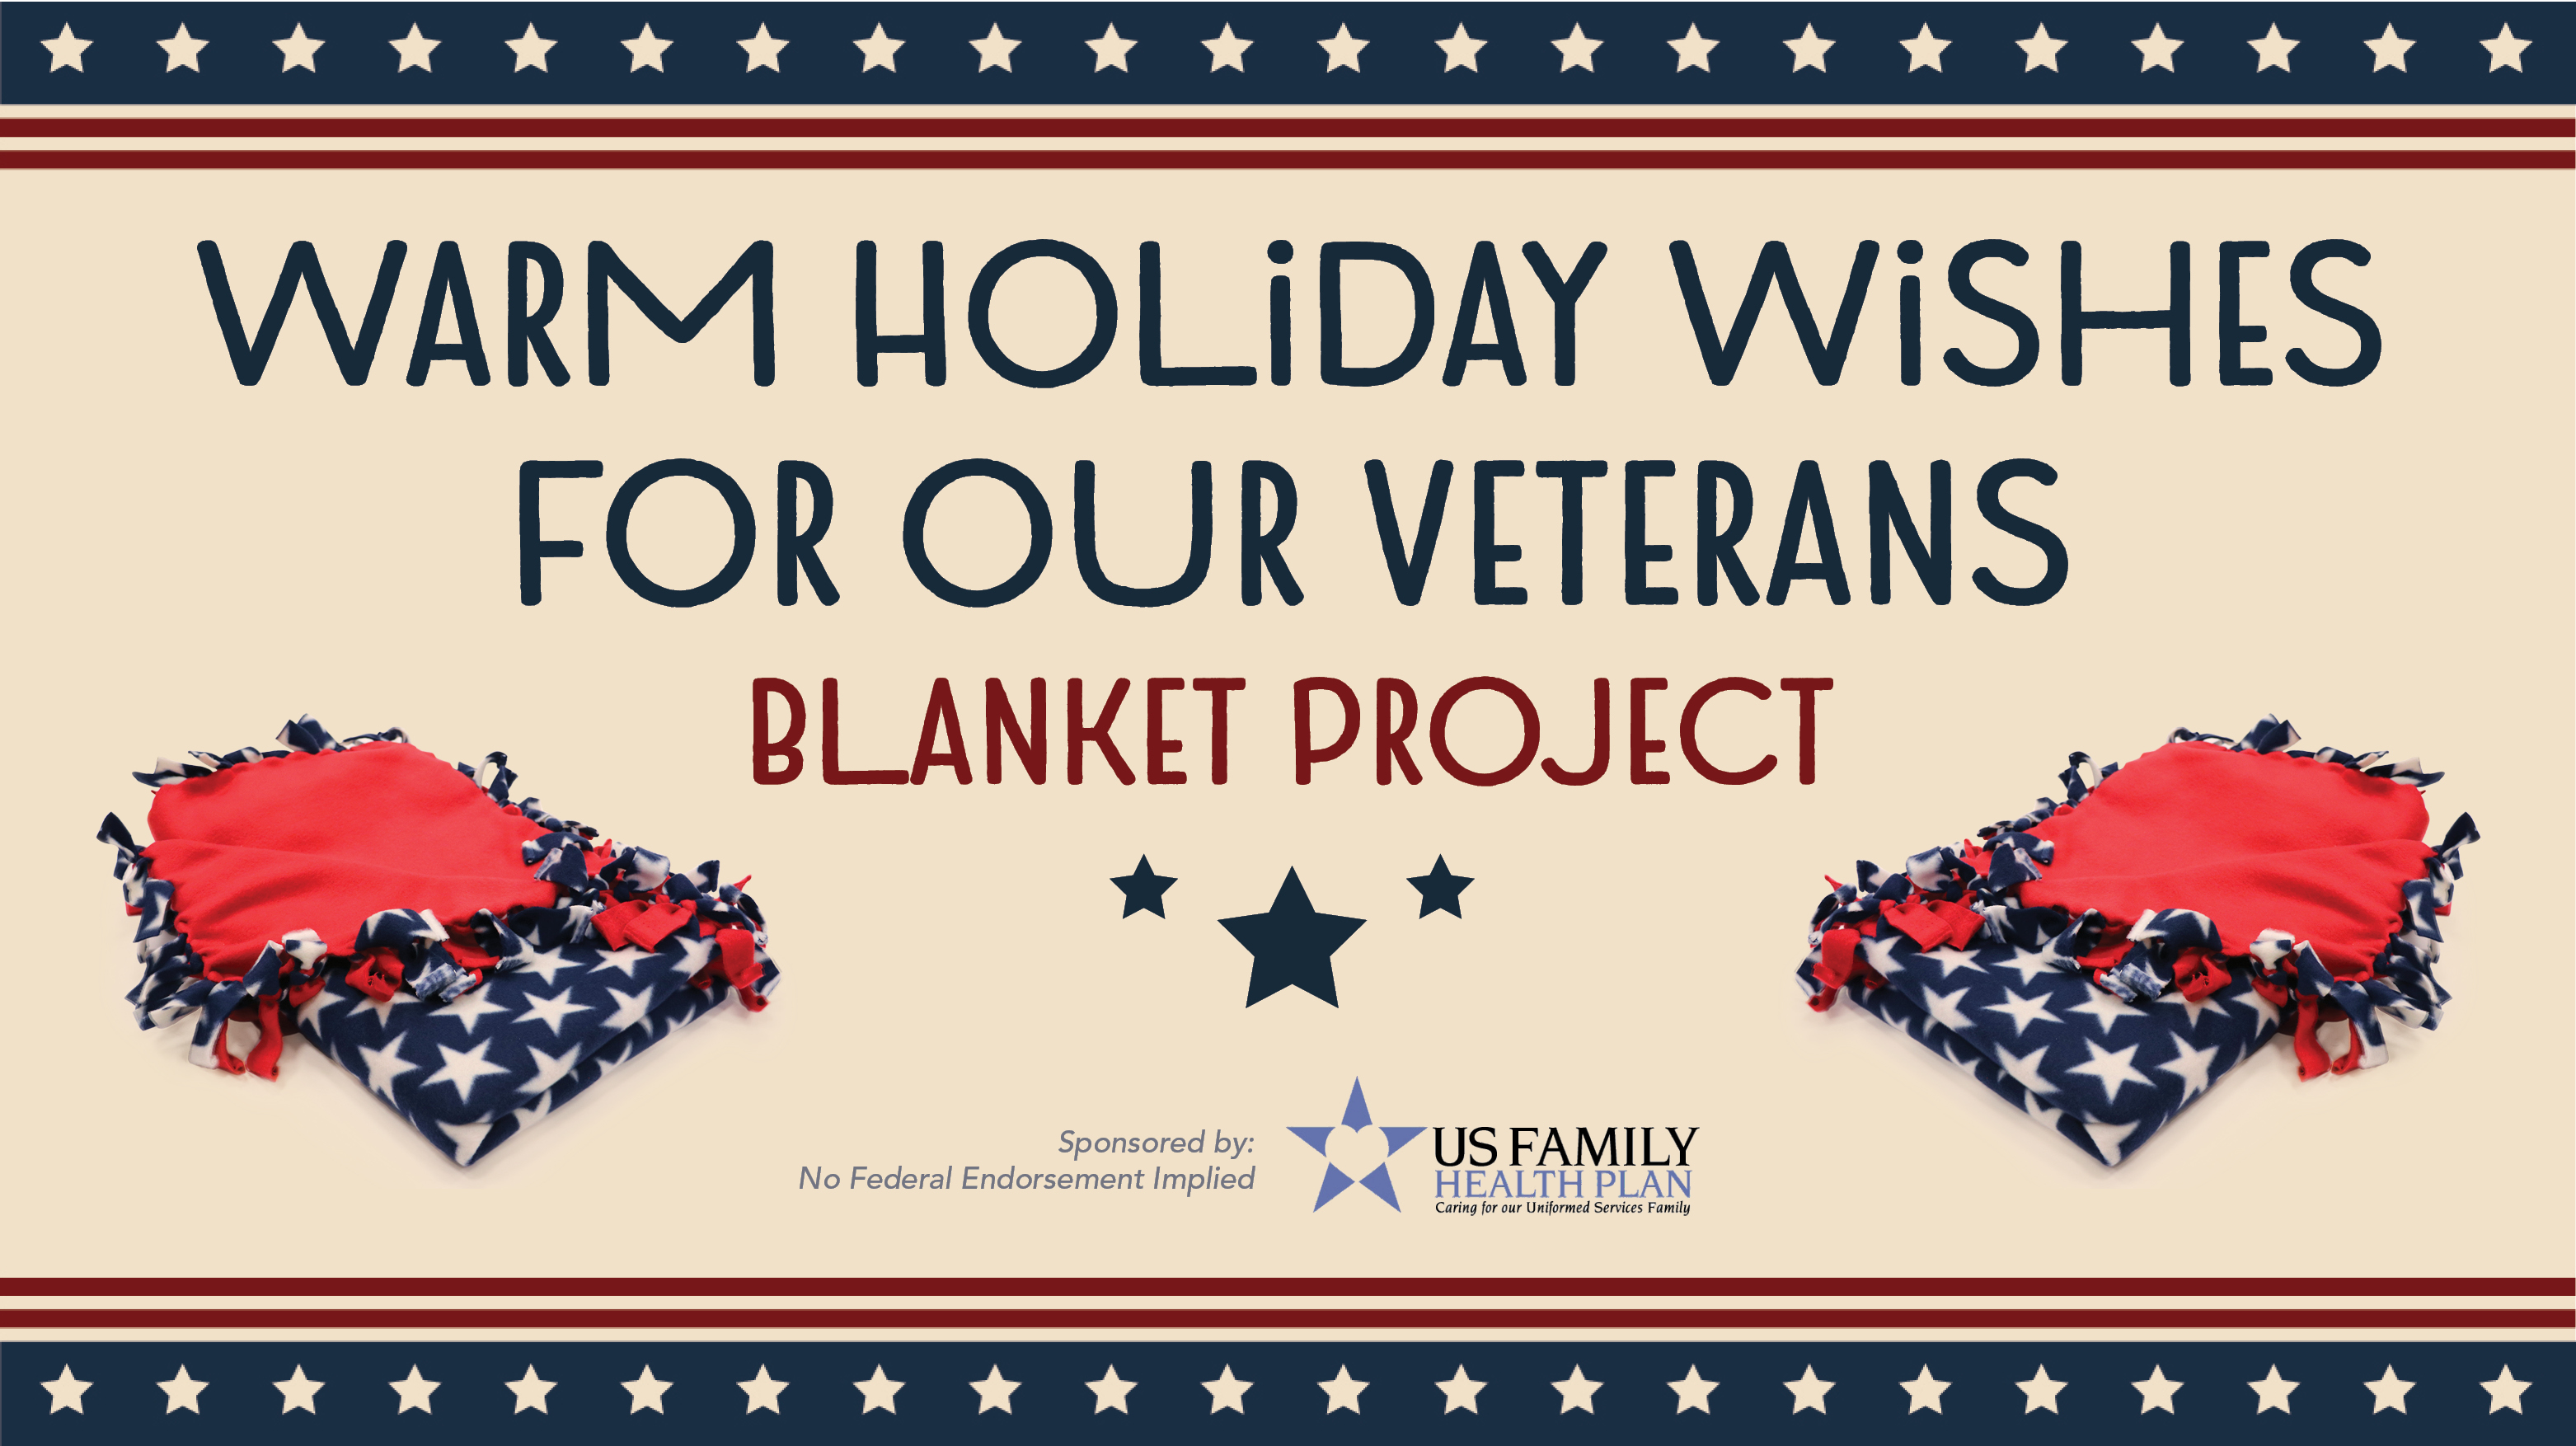 Warm Holiday Wishes For Our Veterans: Blanket Project